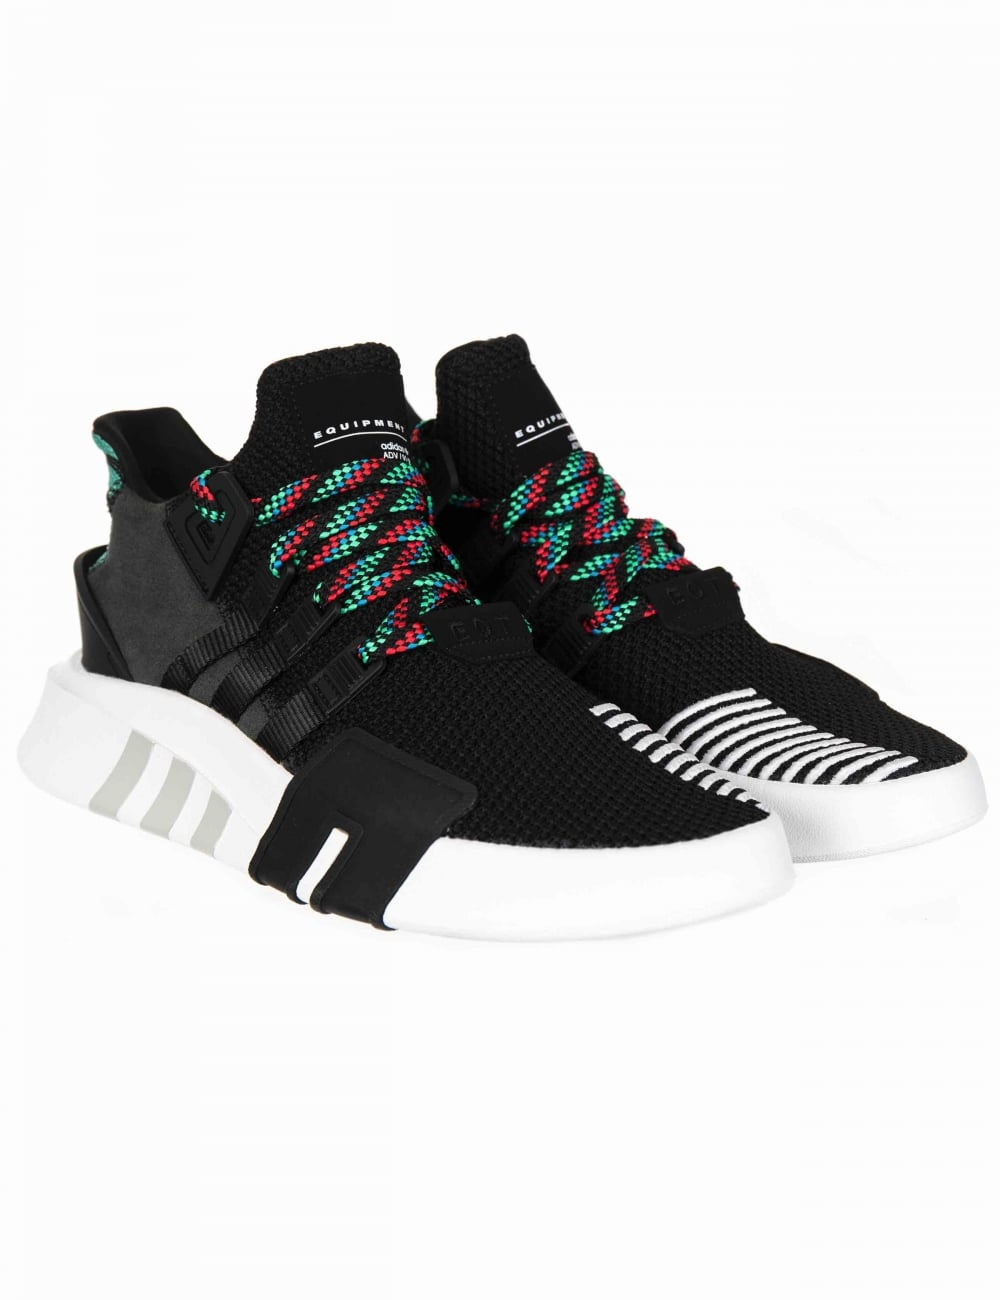 c99f1ba957dd Adidas Originals EQT Bask ADV Shoes - Core Black Sub Green ...